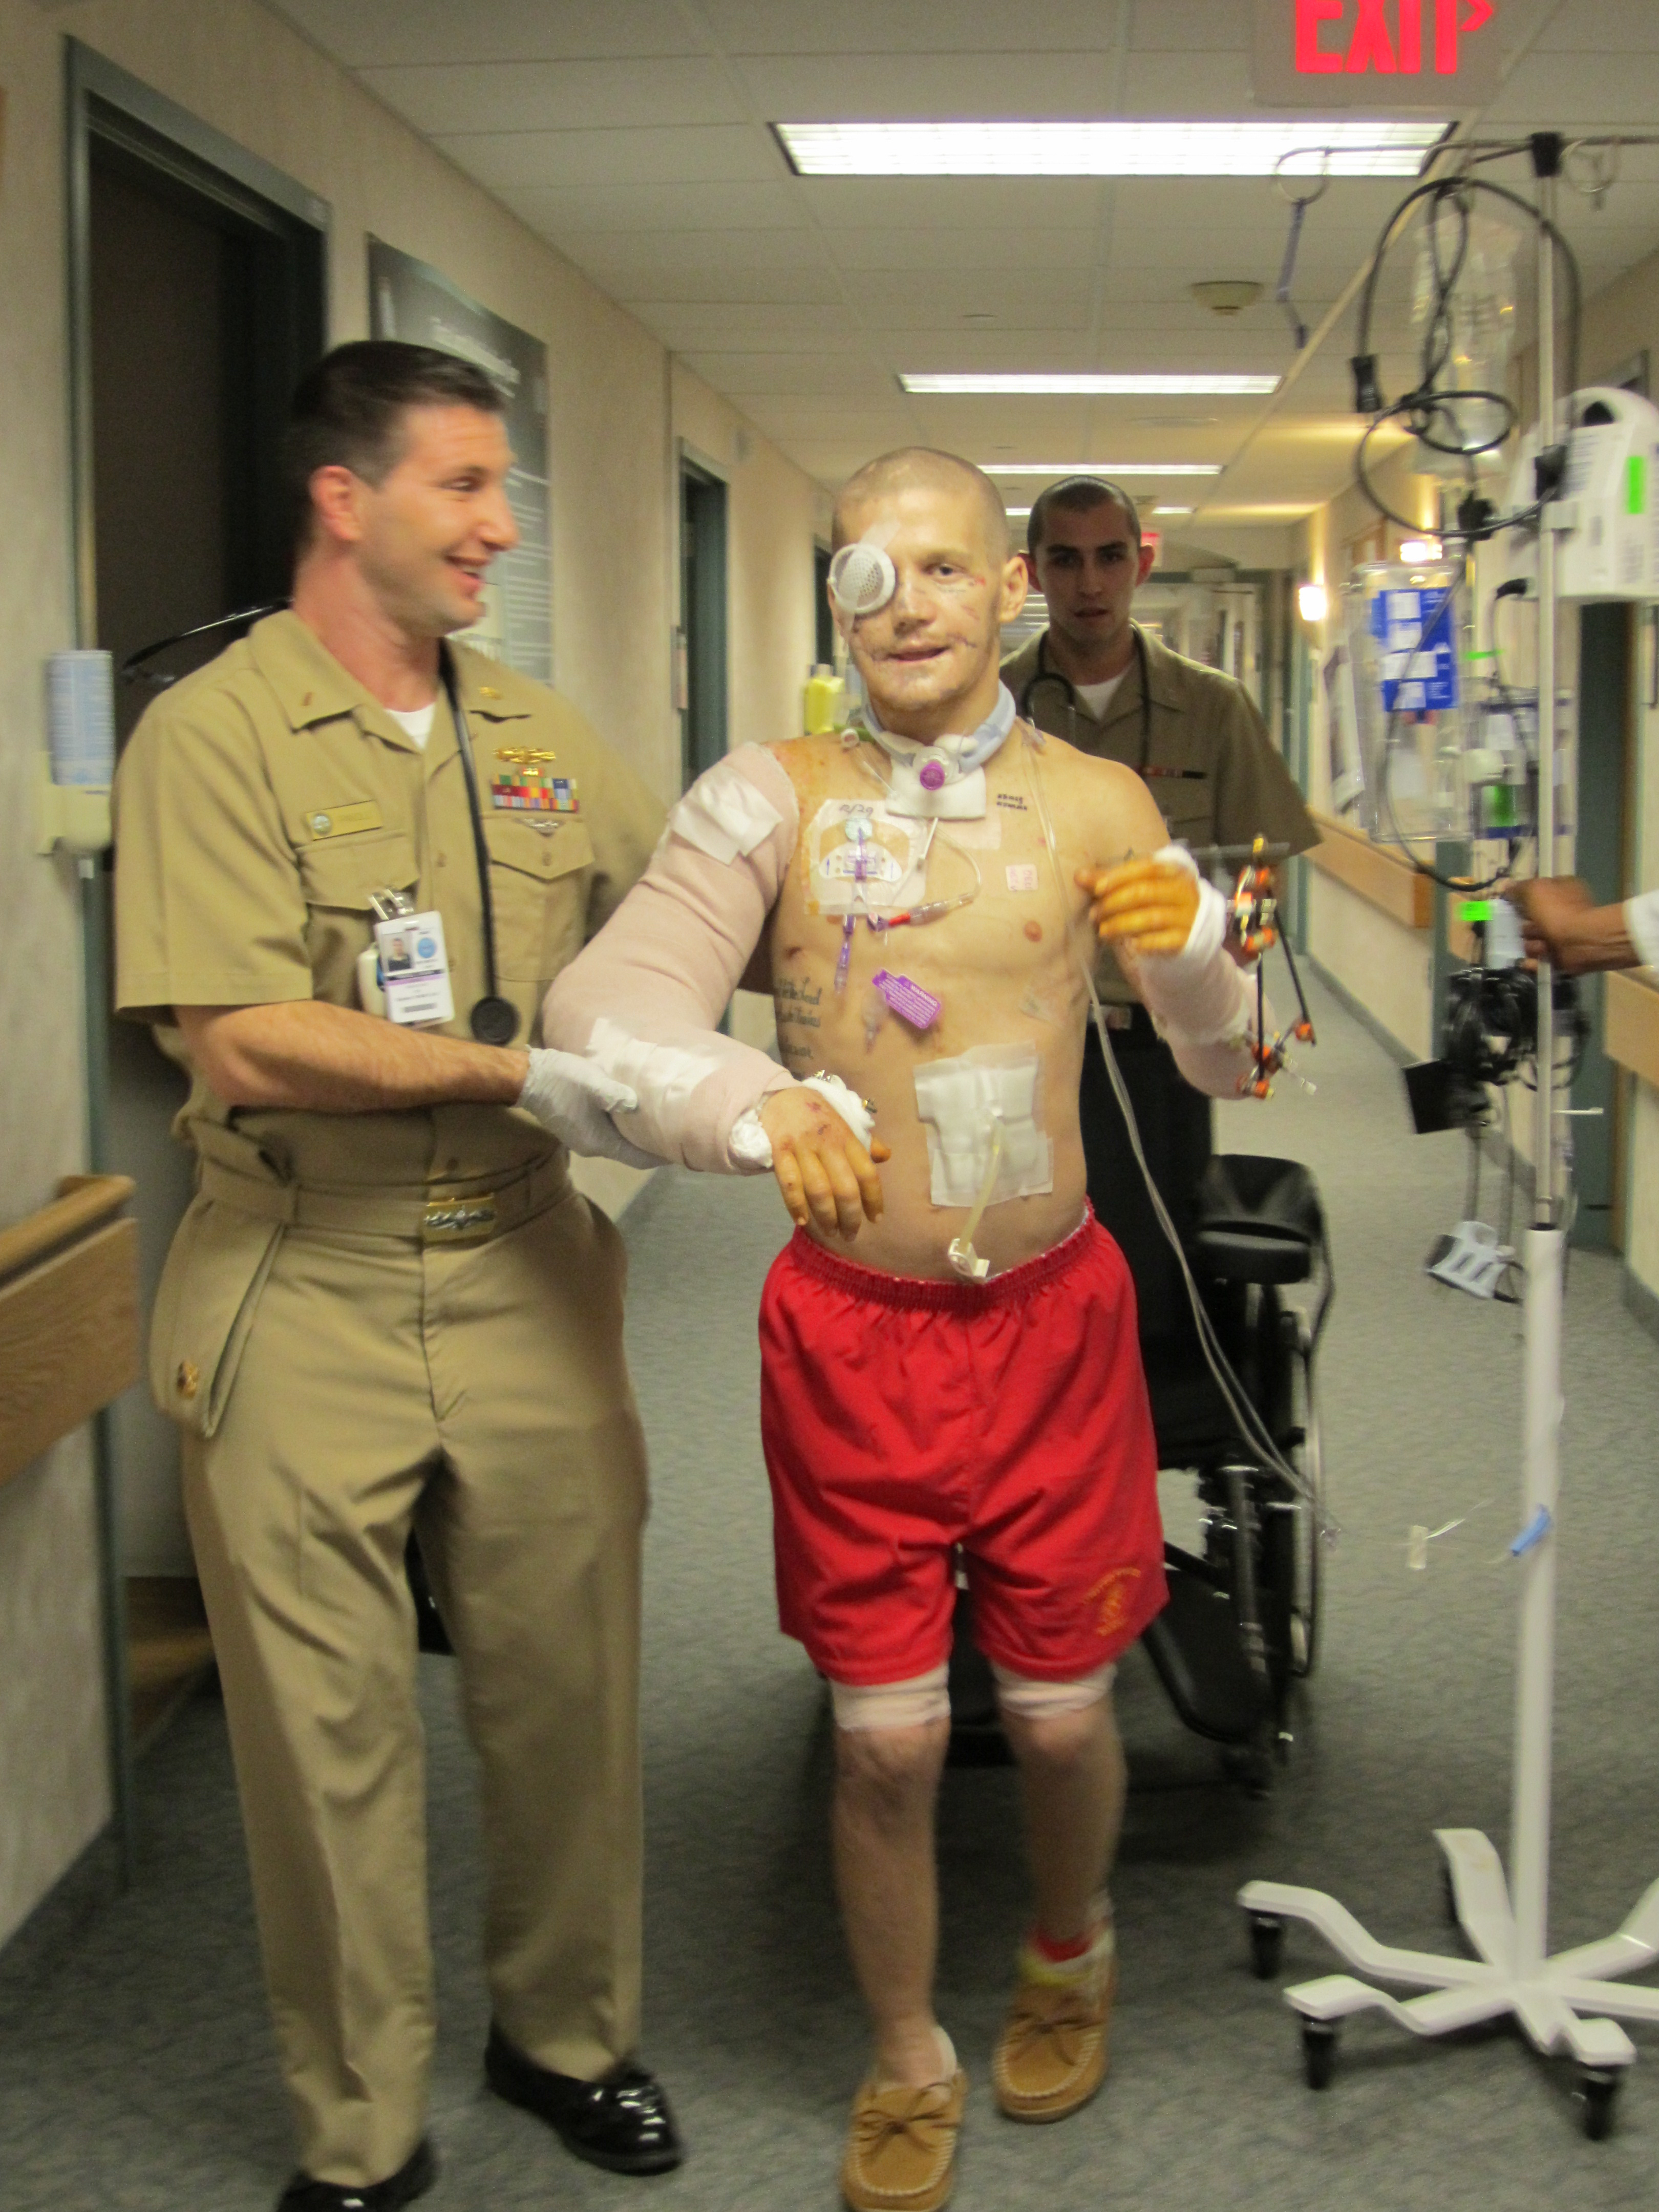 Kyle Carpenter takes first steps at Walter Reed hospital. Used with permission from HarperCollins.